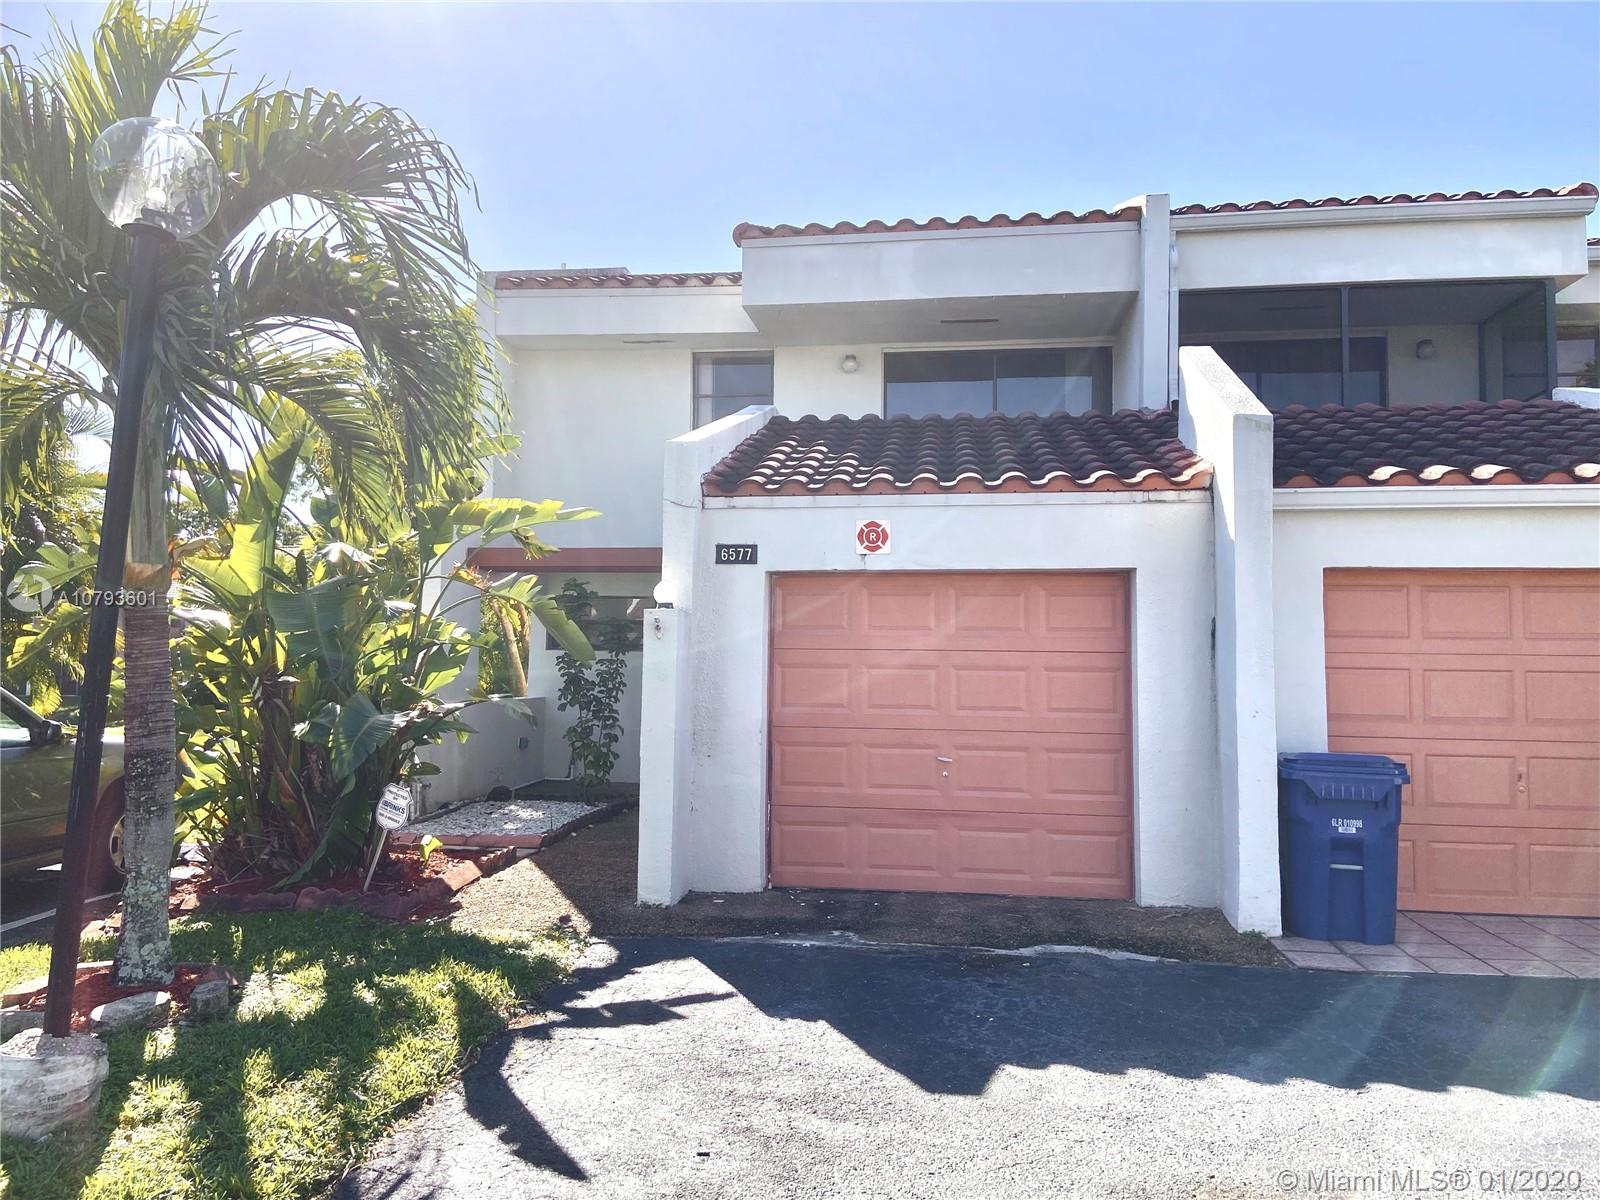 Spacious remodeled and freshly painted Corner unit Townhouse! 3 bedrooms 2.5 bathrooms! Huge walk in closet in Master bedroom and private balcony overlooking tranquil waterviews. Ceramic tile throughout the living areas, kitchen and all the bedrooms.  Brand new water efficient toilets and faucets in all the bathrooms.  Private laundry room.  Garage and extra parking spaces in front of the townhouse! Gated community features clubhouse, pool, exercise room, and management on site!